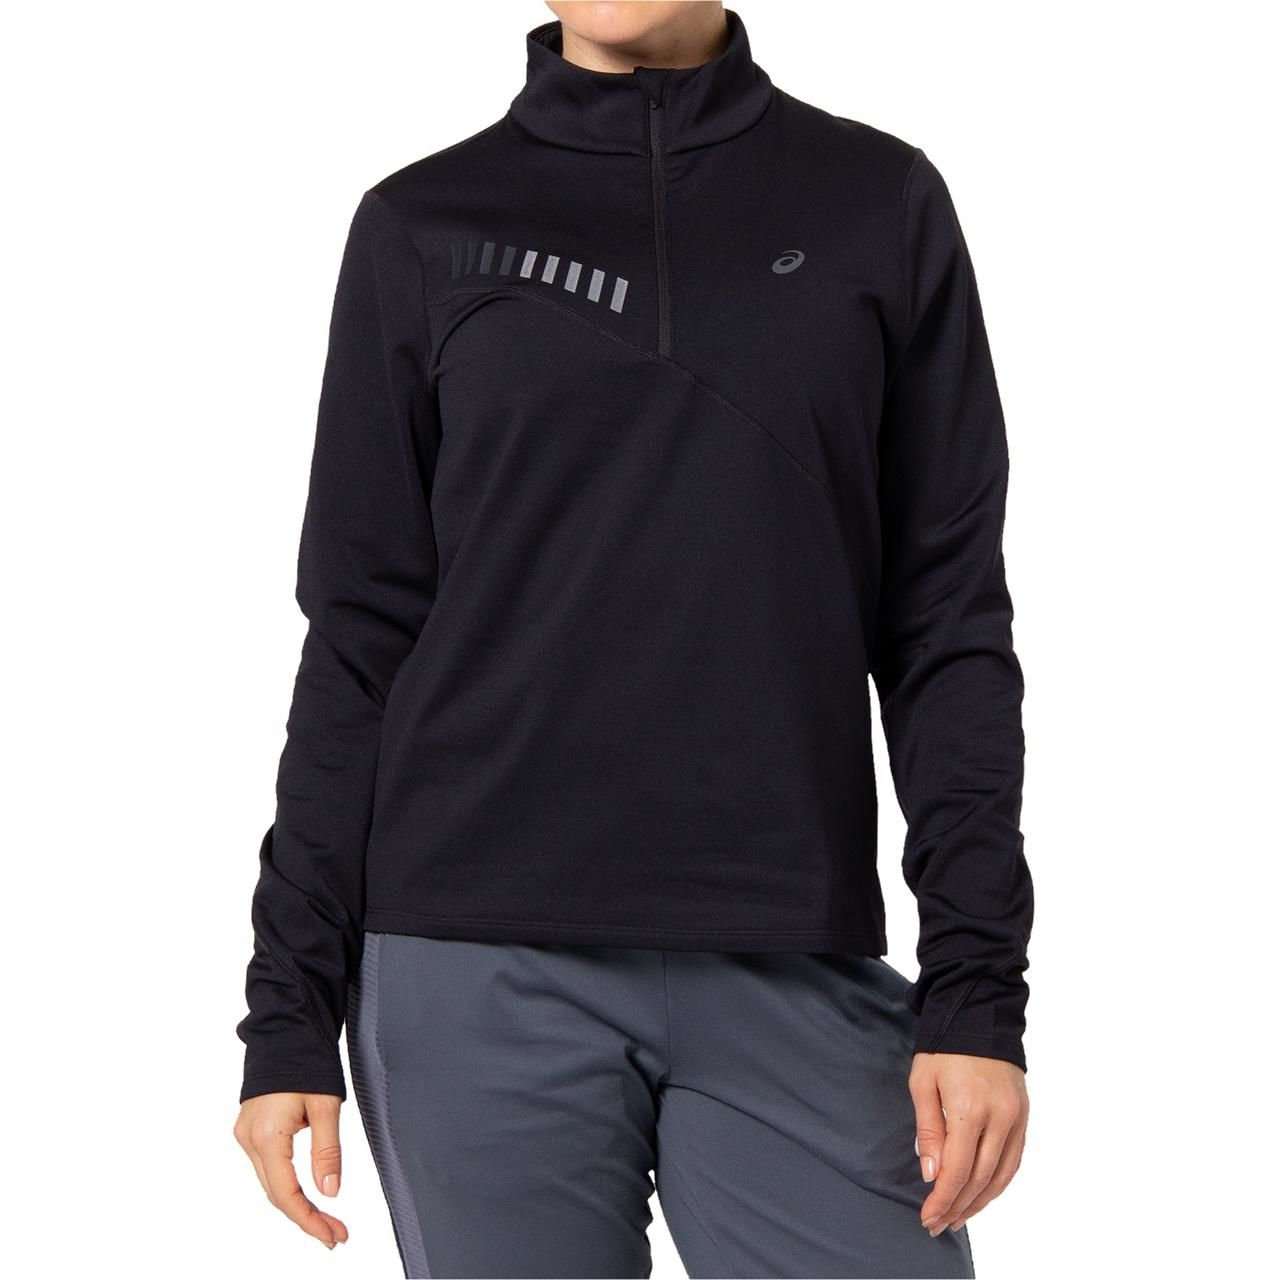 Asics Lady Lite-Show Winter 1/2 Zip Top (Black)